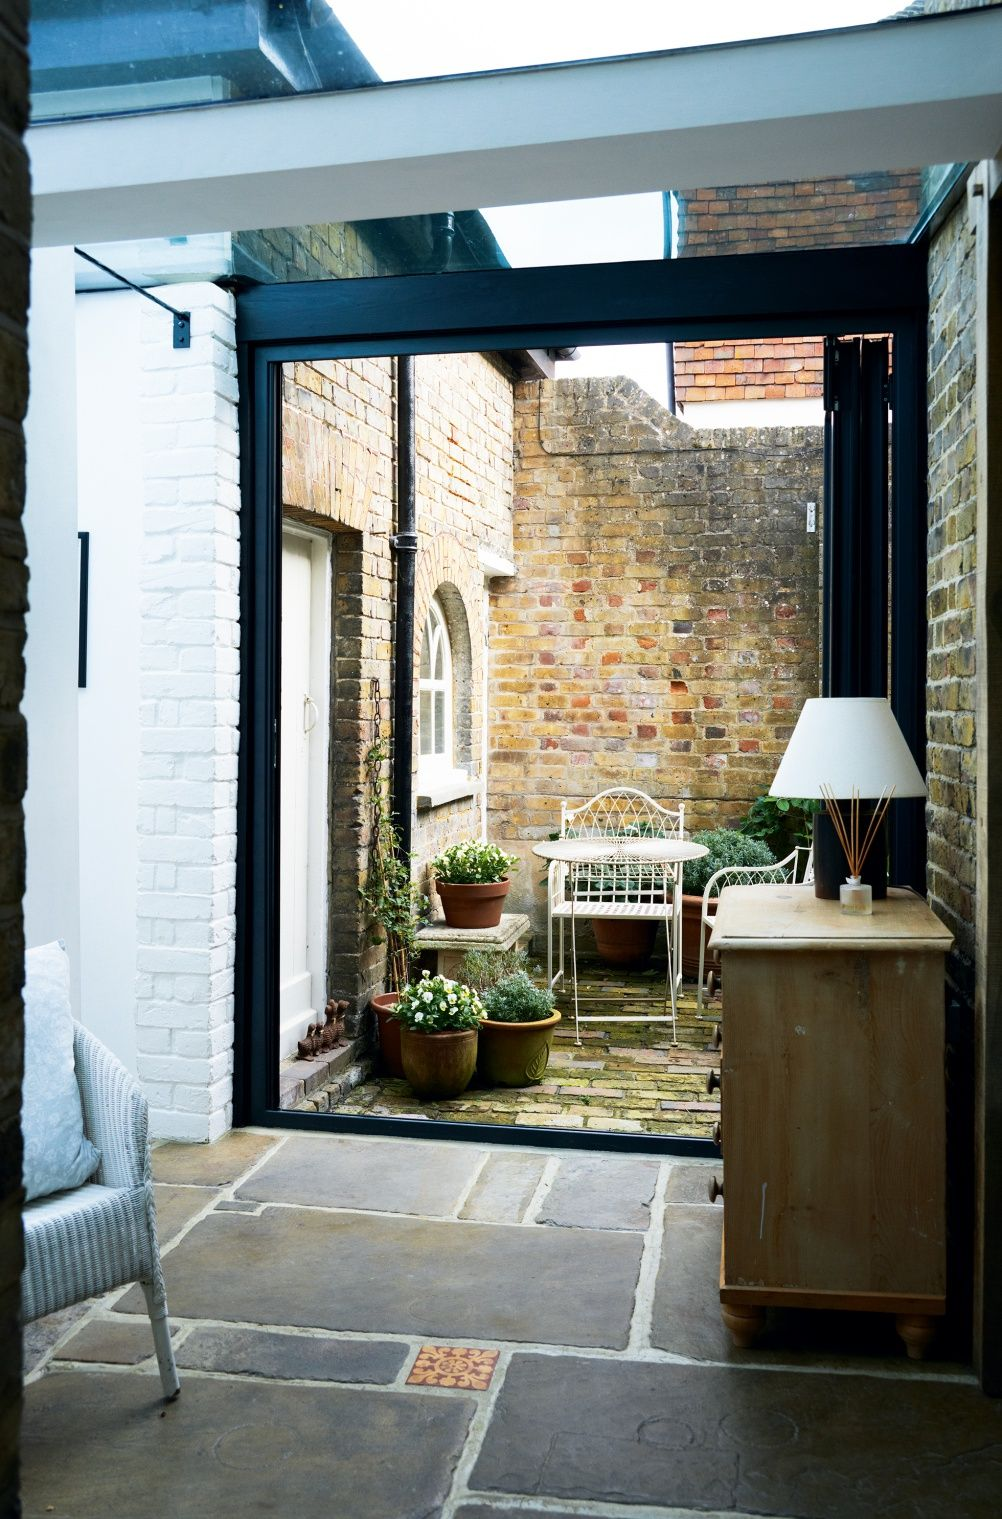 Garage Extension Ideas garage conversion link corridors - google search | extension ideas